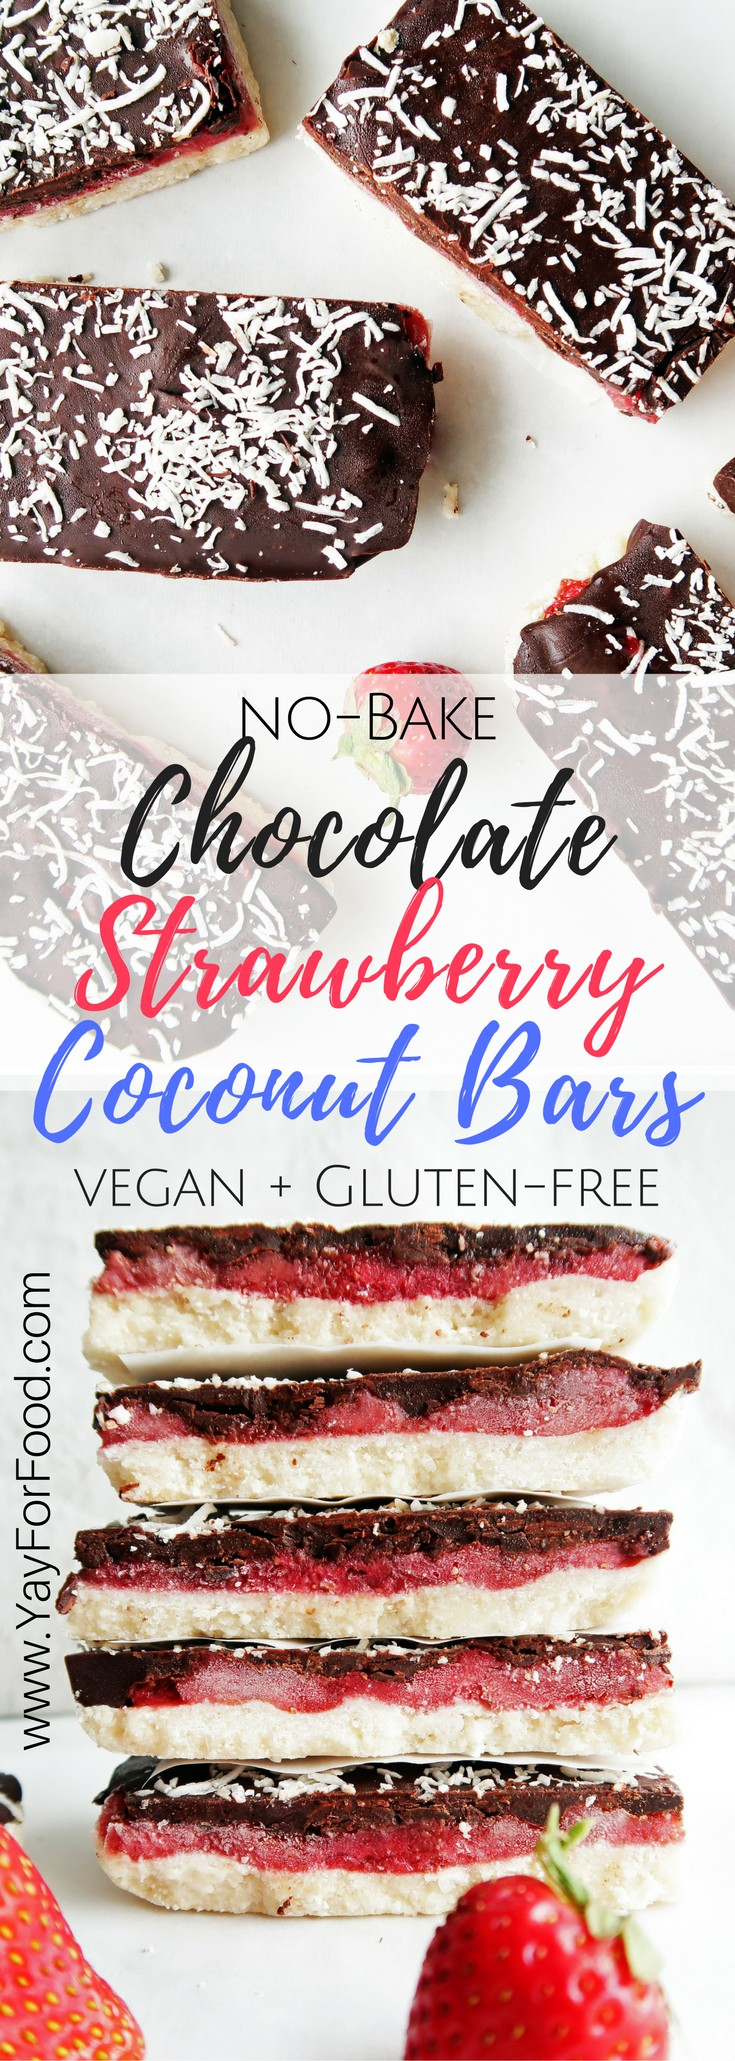 This delicious triple-layered chocolate strawberry coconut bar is no-bake, only uses 6 ingredients, and is ready in 30 minutes! Vegan and gluten-free too!